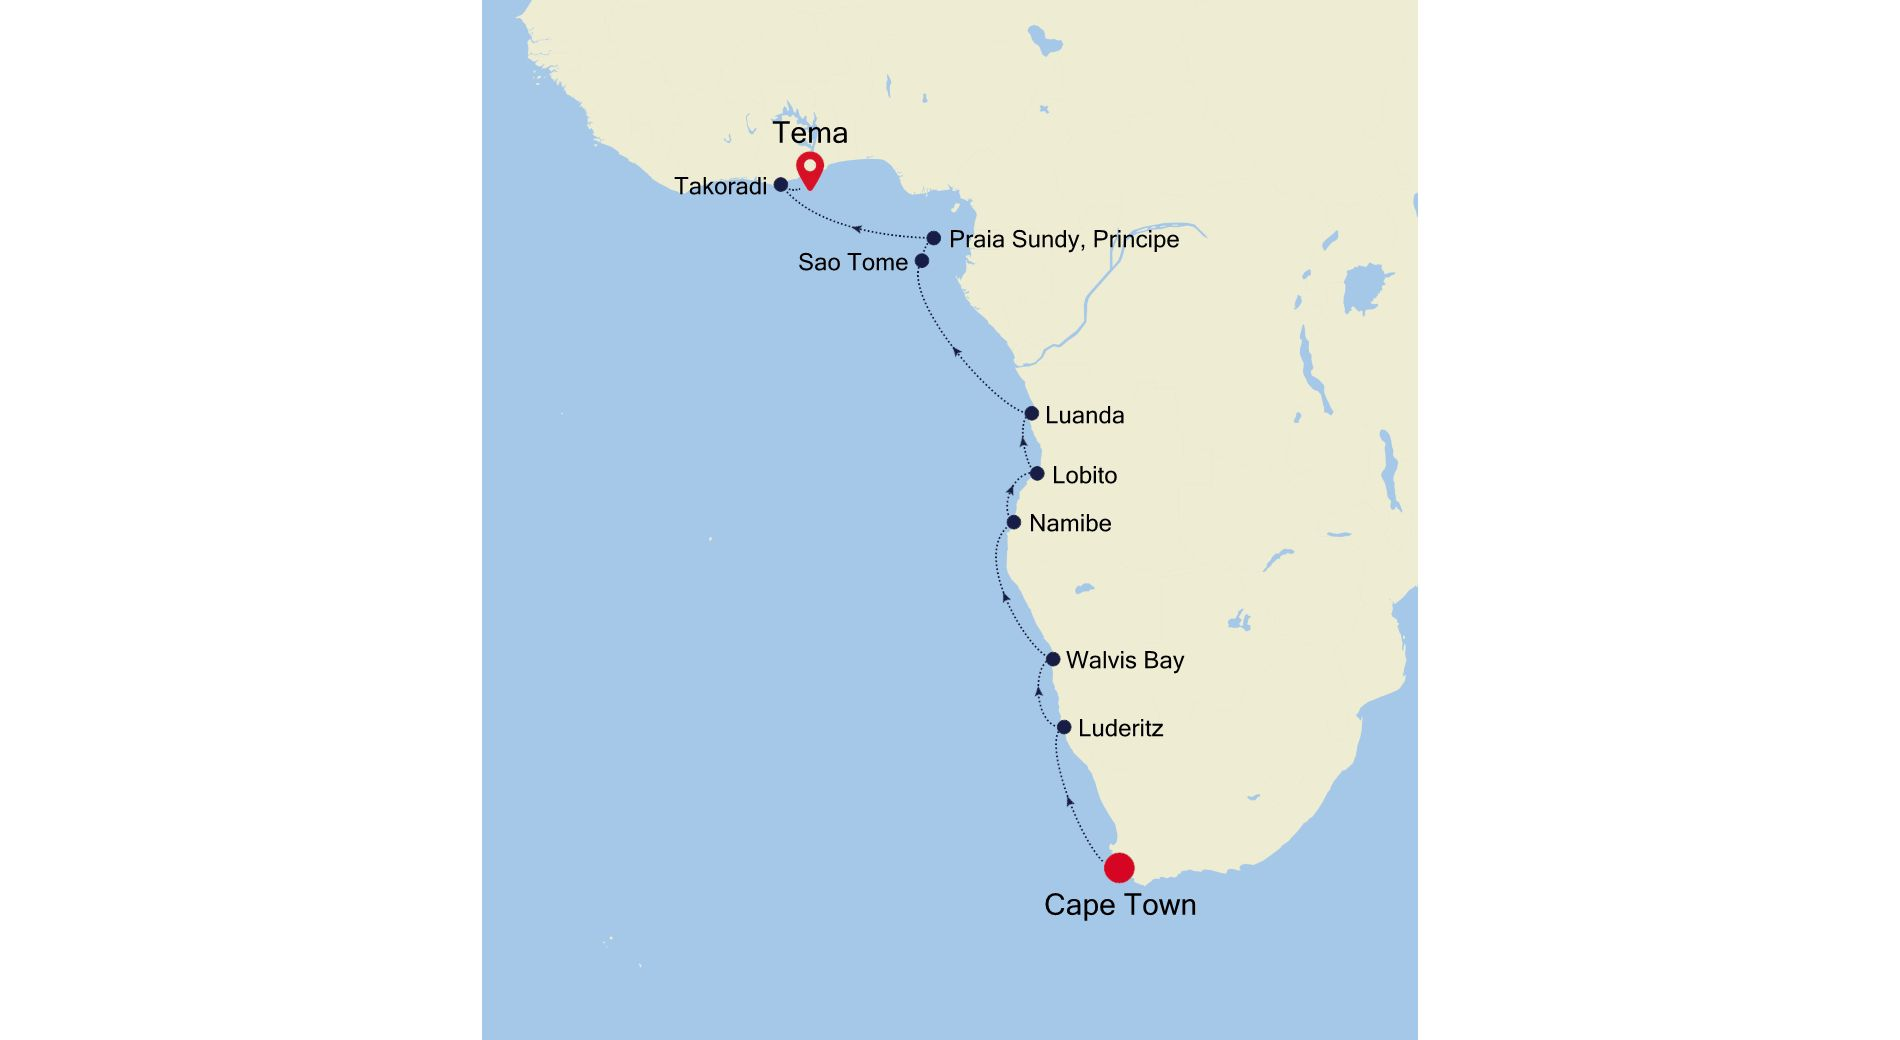 1908 - Cape Town to Tema